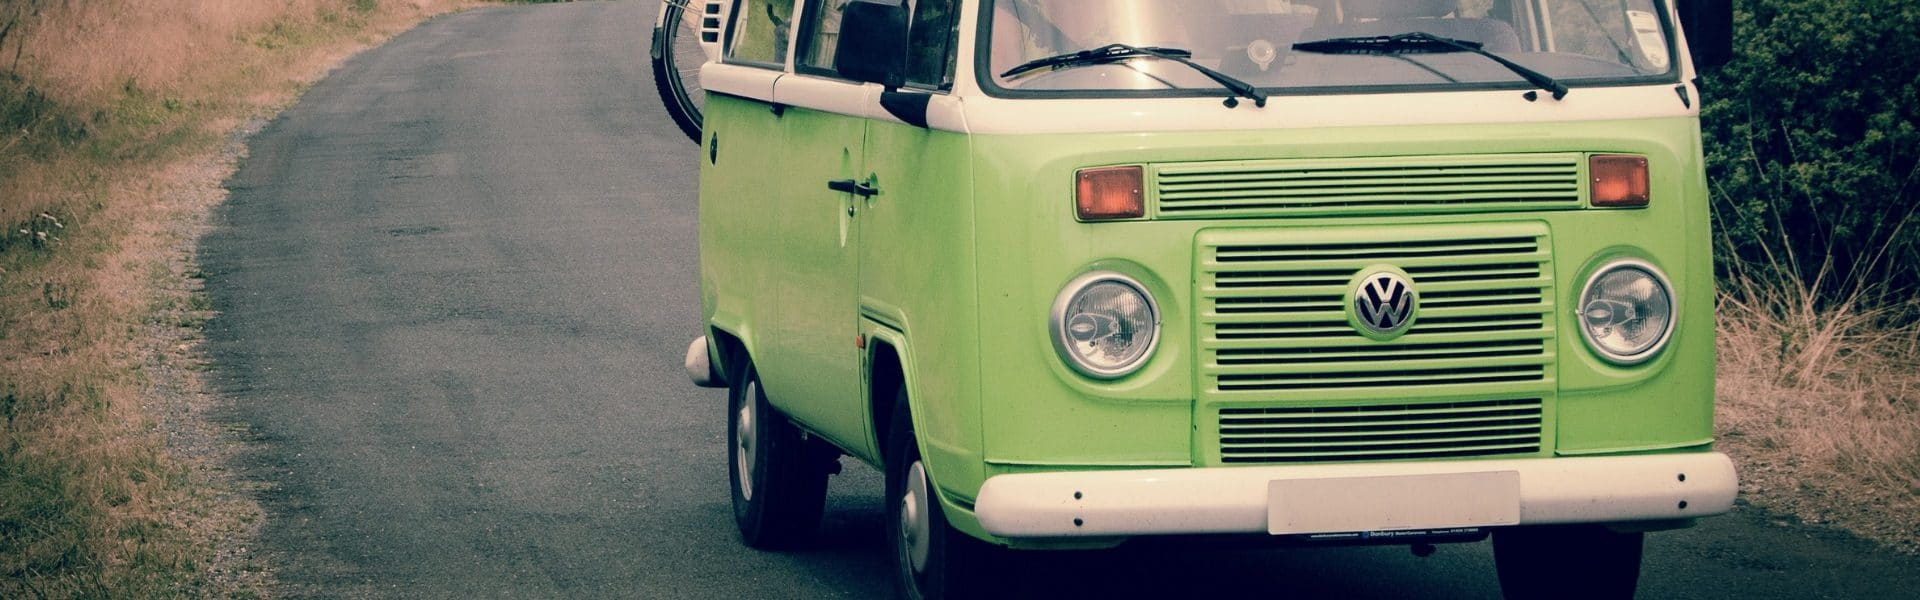 Green VW campervan driving towards the camera - 10 Fun Campervan Accessories For Your Next Road Trip